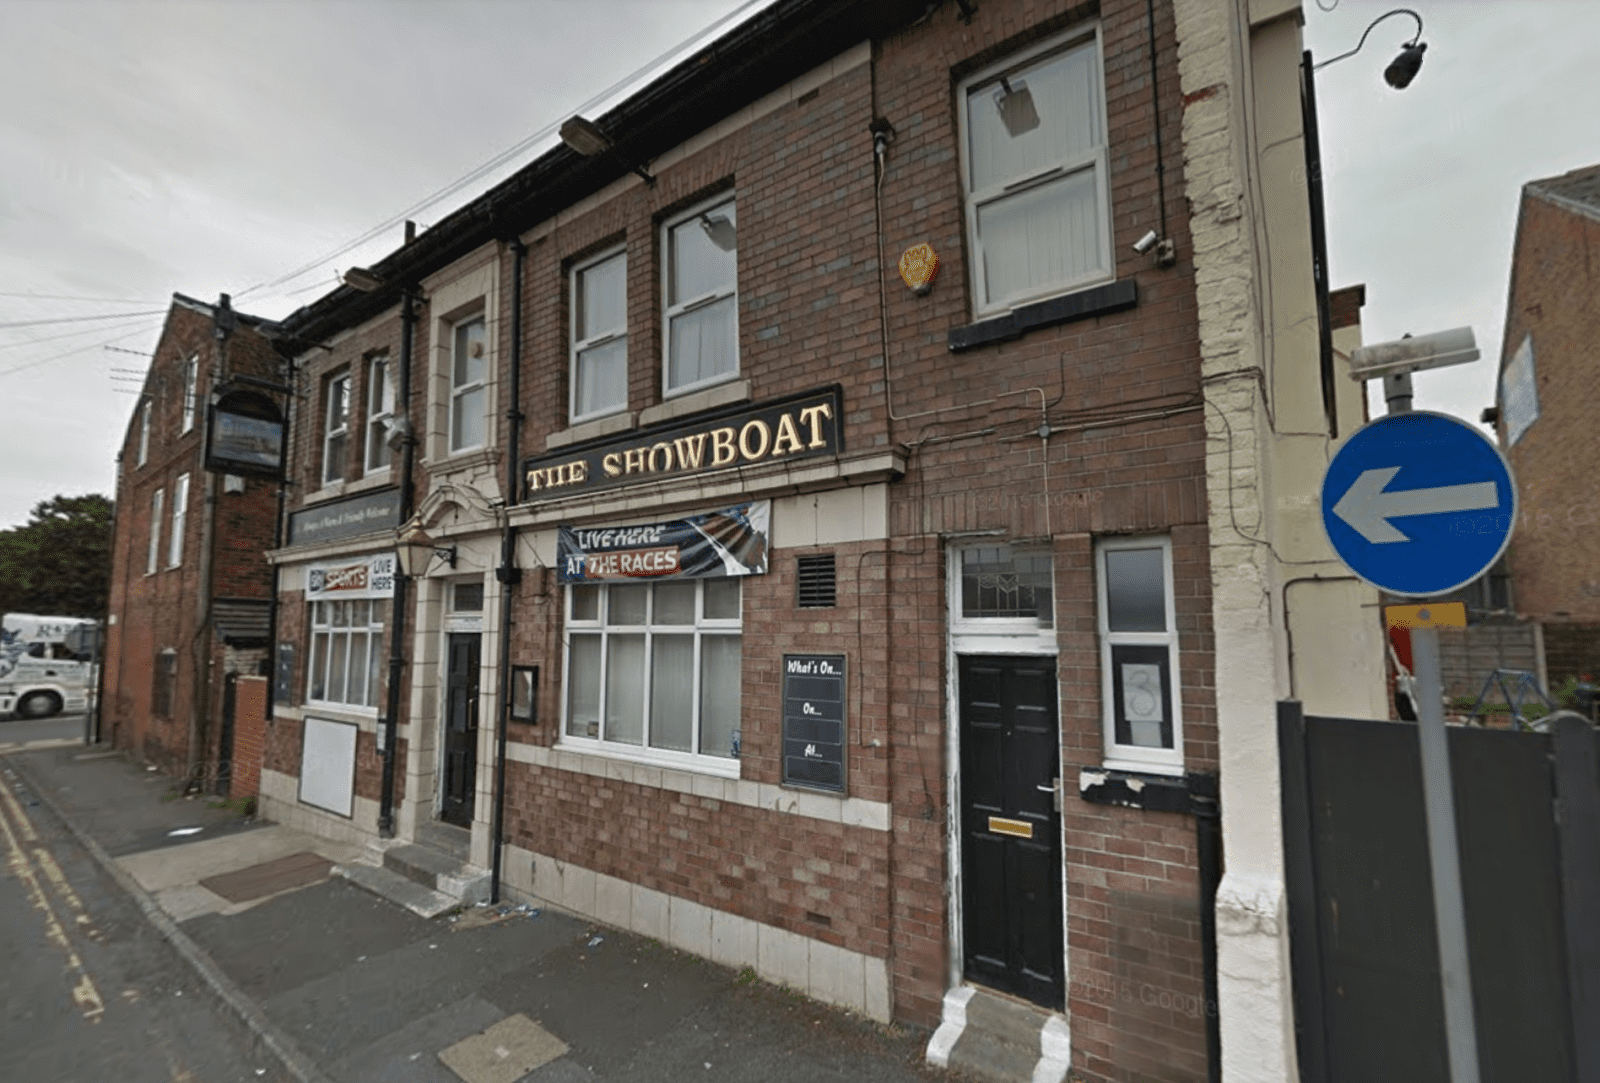 Desperate appeal for missing landlord last seen walking out of Salford pub, The Manc